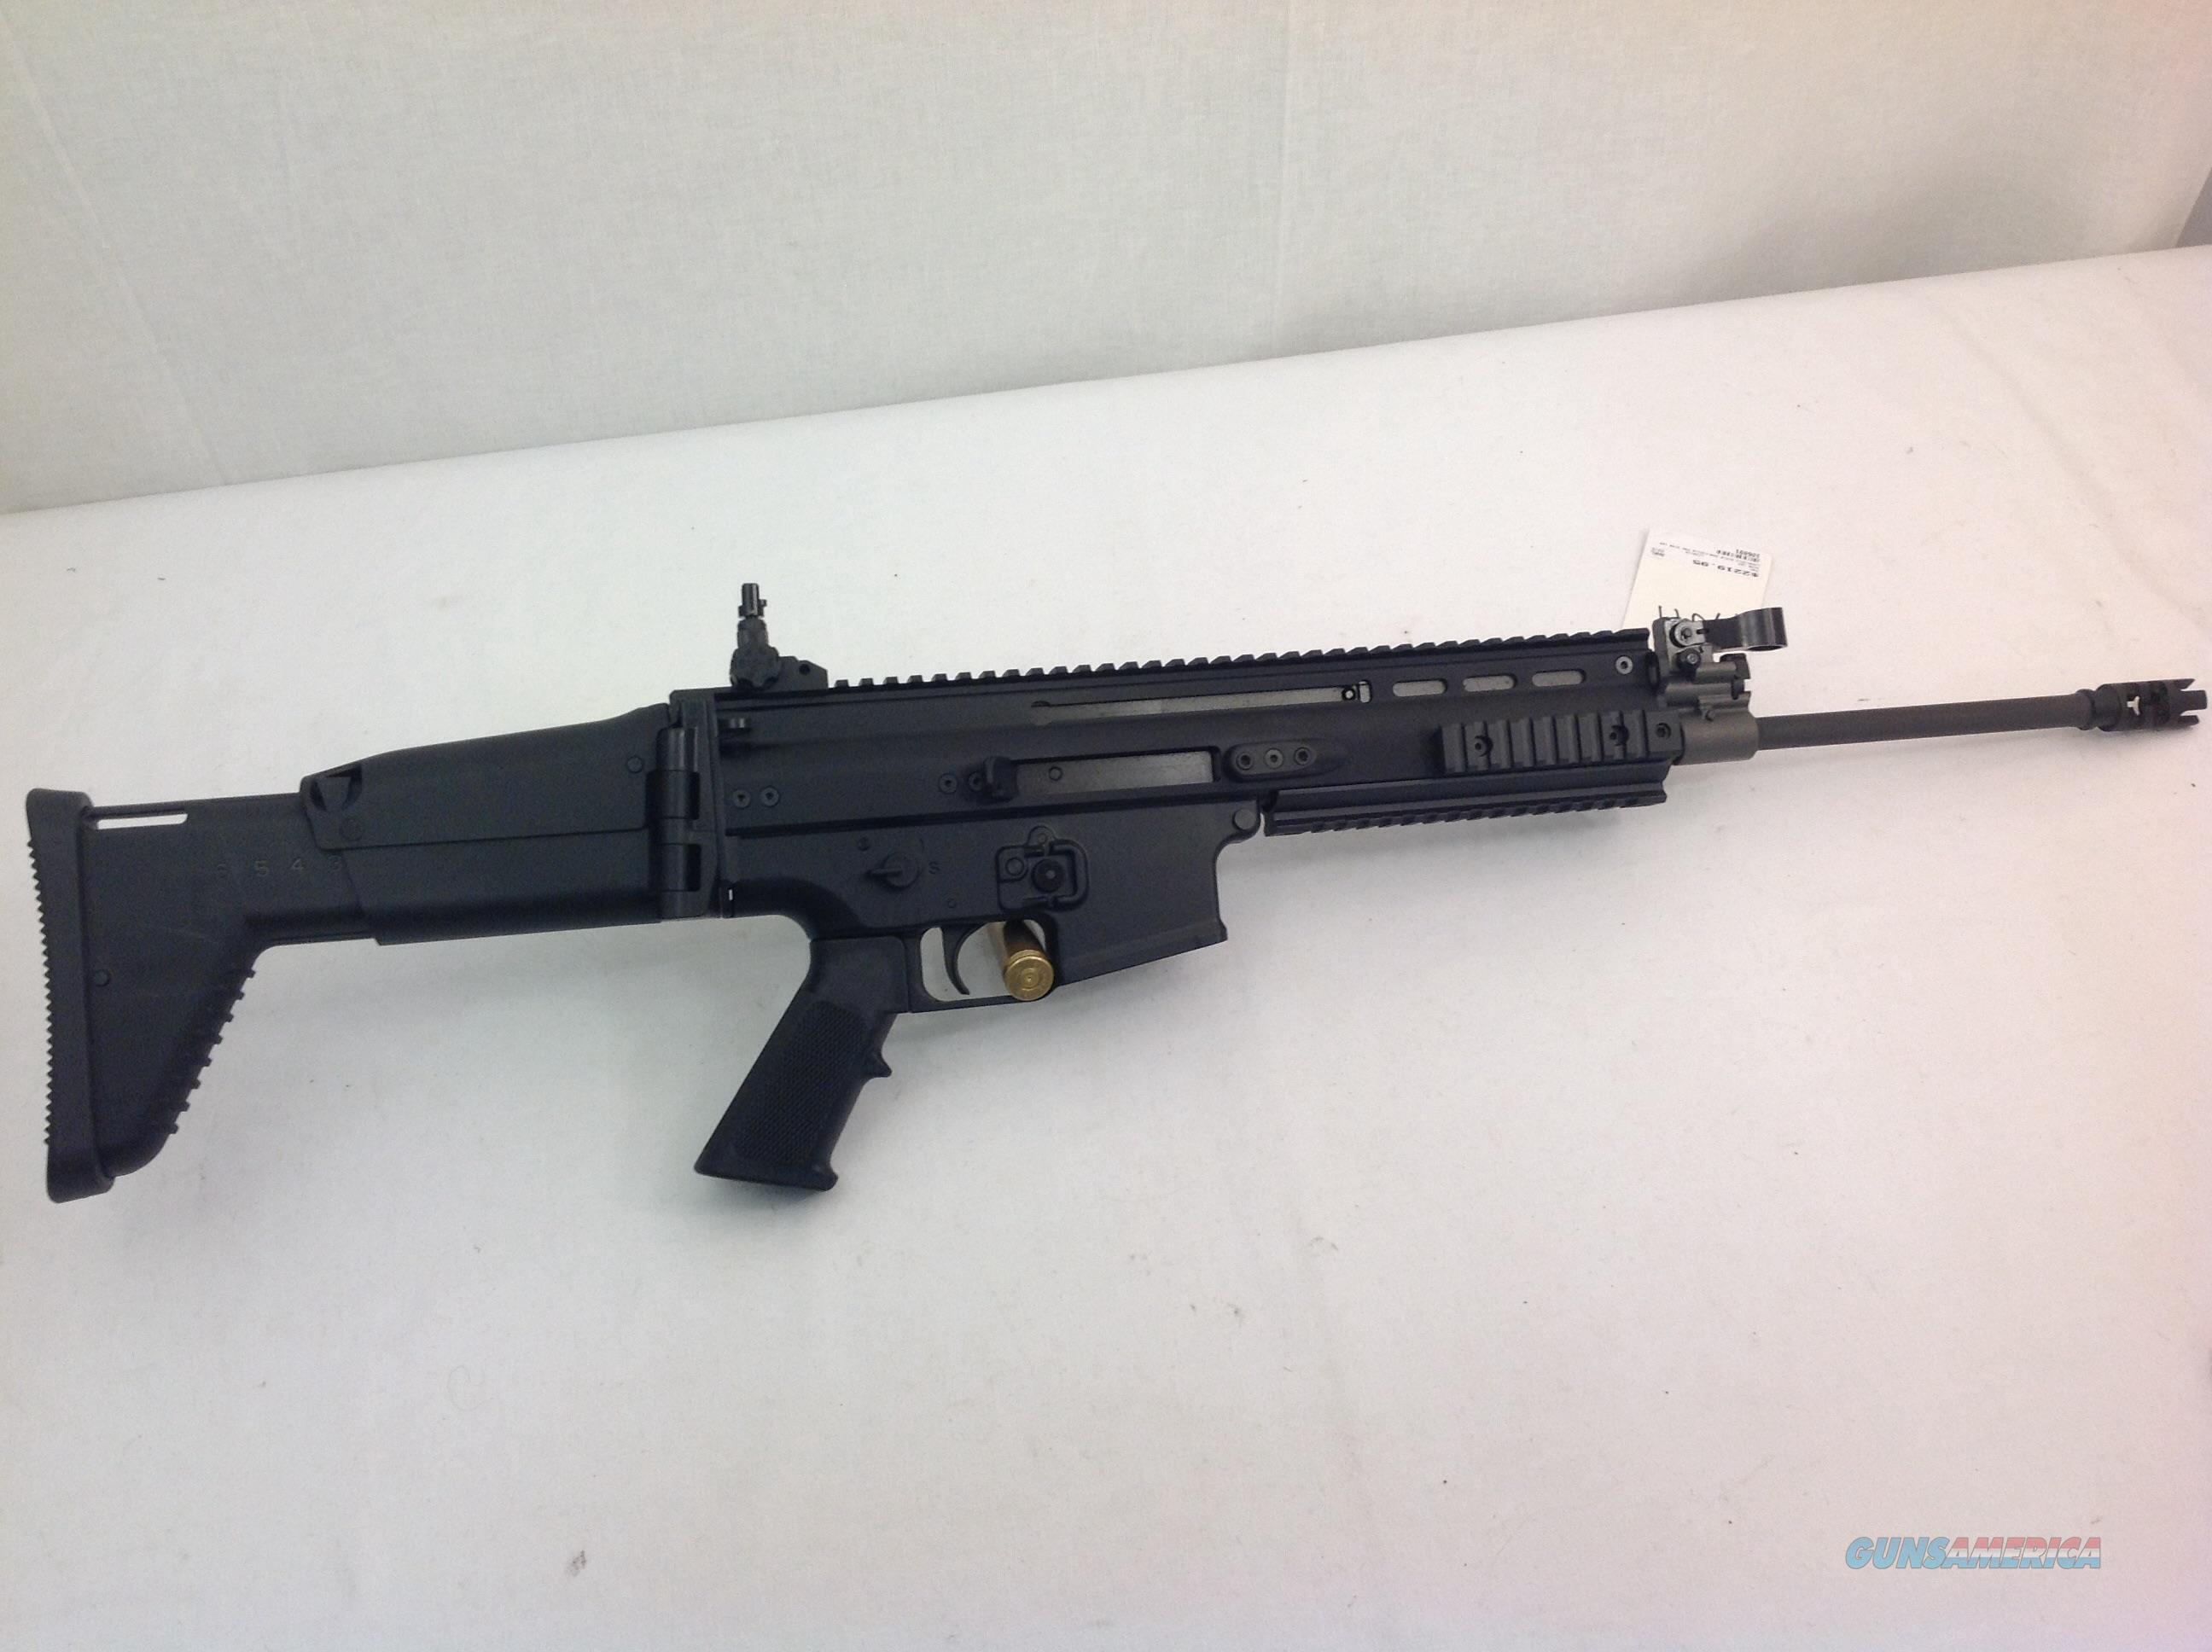 FNH SCAR 16S 5.56 NATO  Guns > Rifles > FNH - Fabrique Nationale (FN) Rifles > Semi-auto > Other